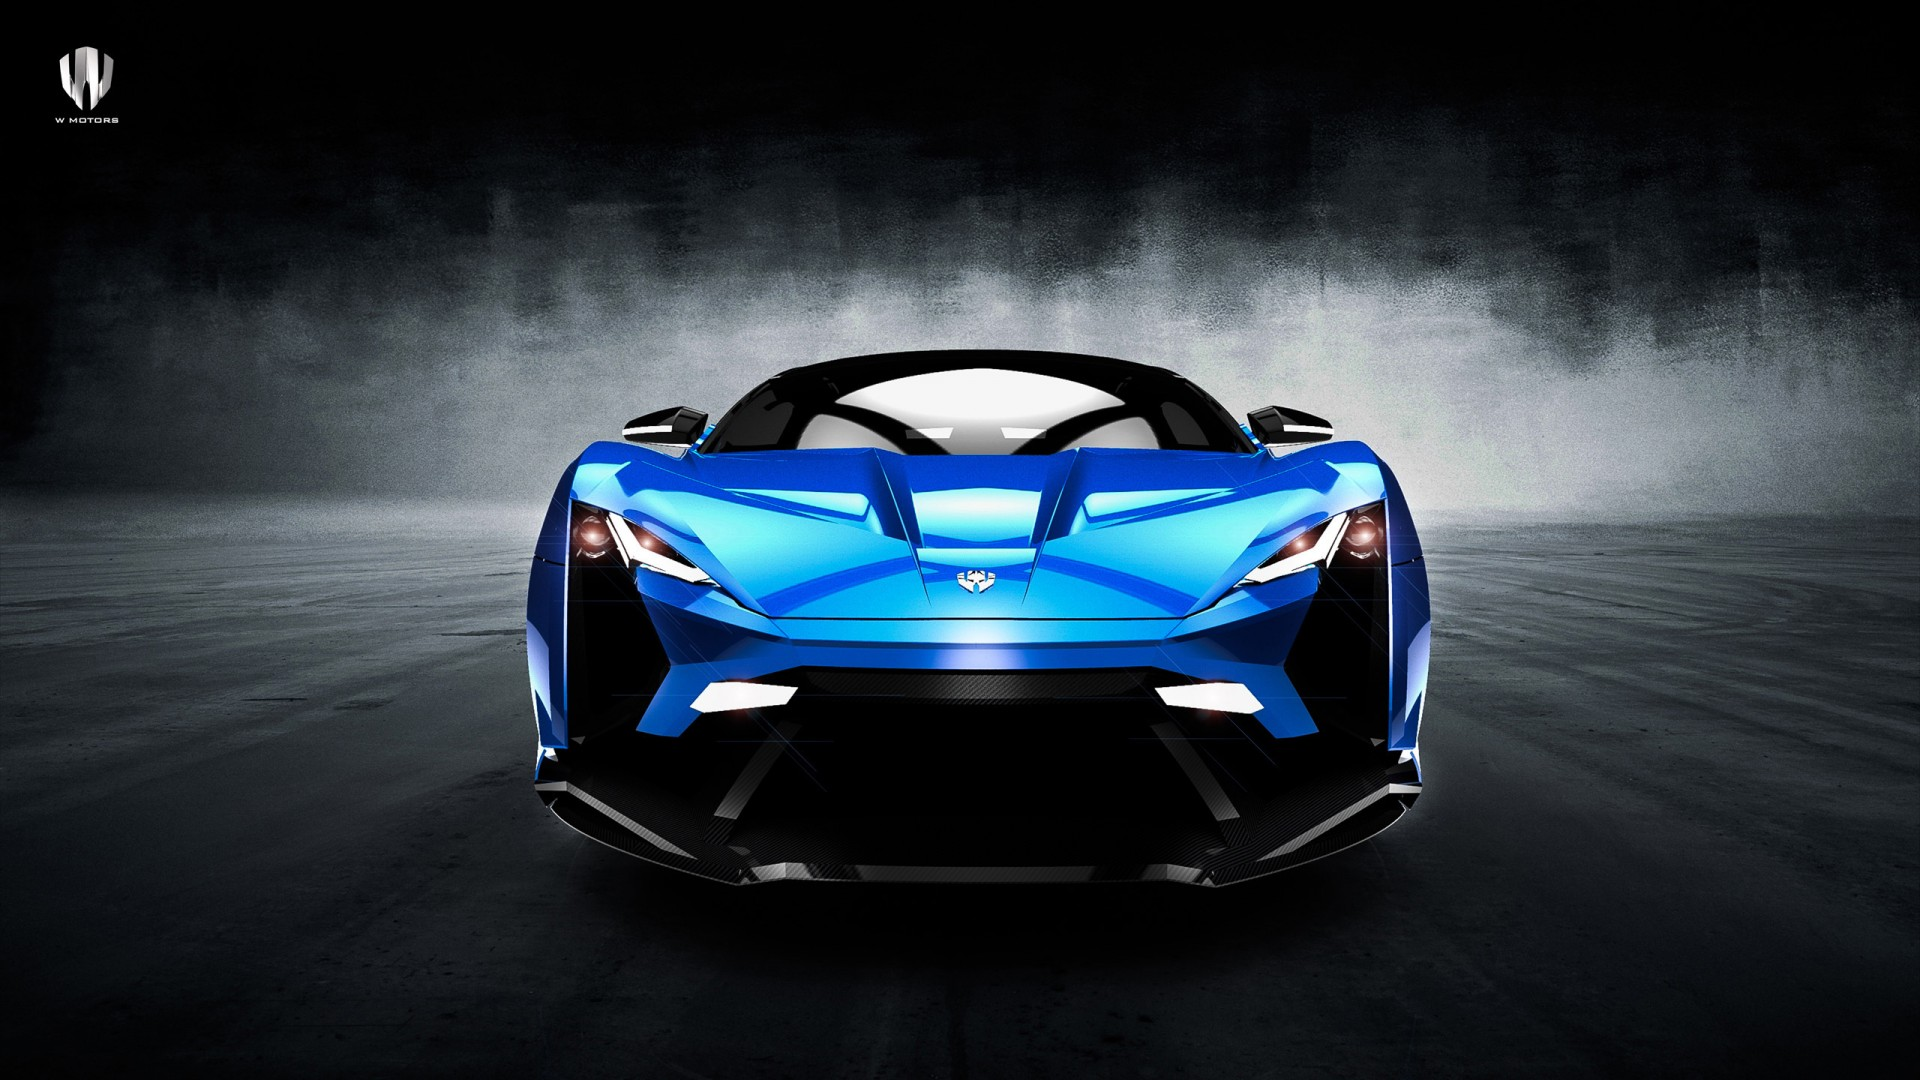 2015 W Motors Lykan SuperSport Wallpaper | HD Car Wallpapers